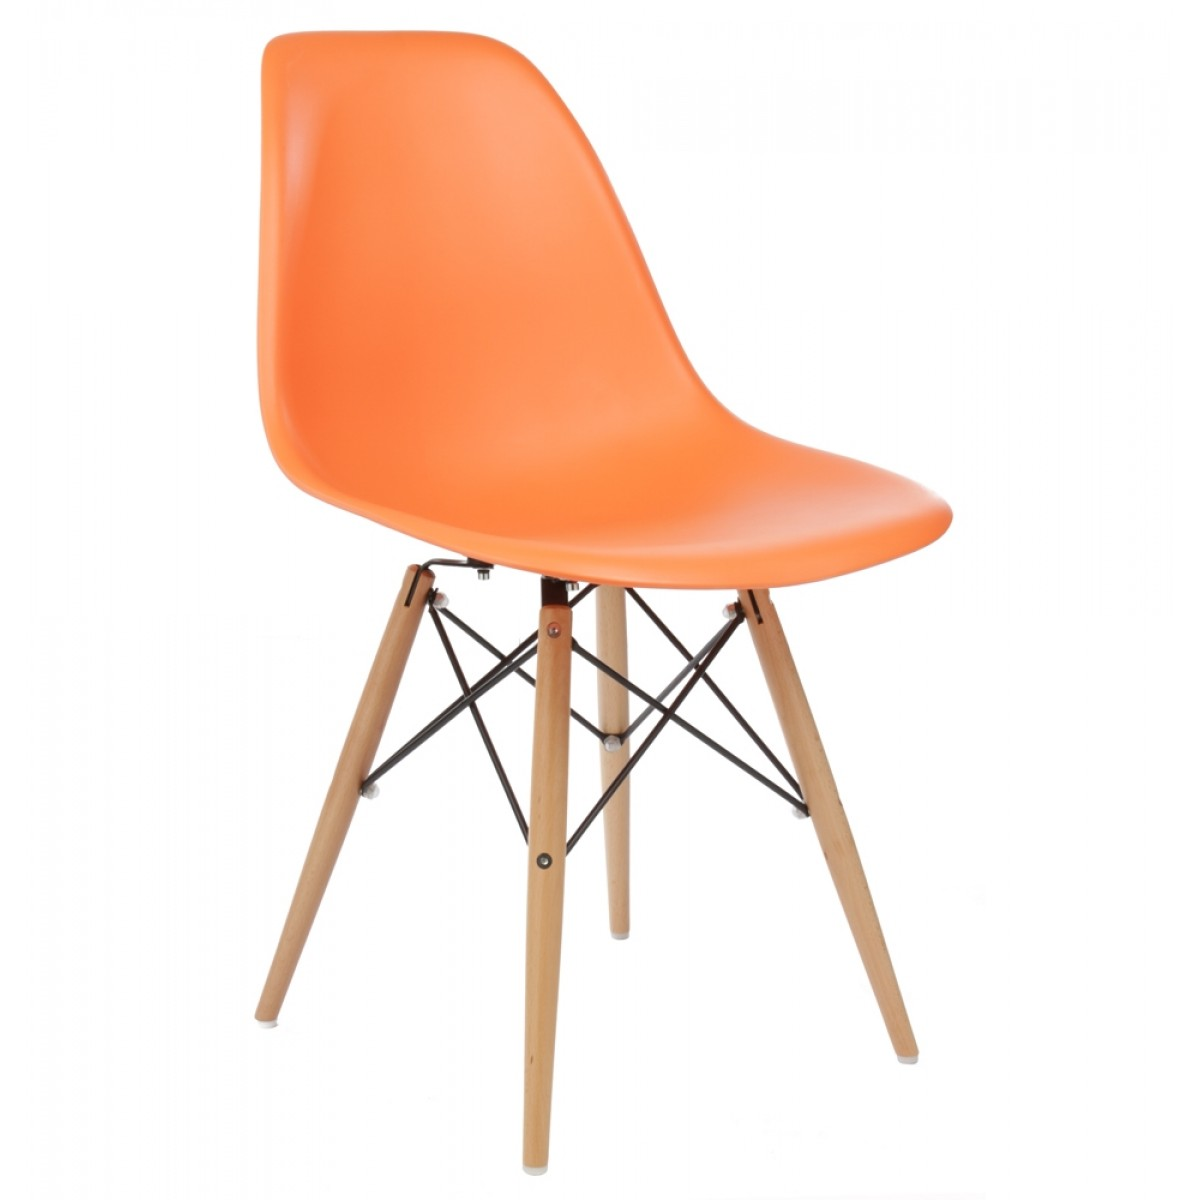 Eames Style Dining Chair Eames Style Dsw Molded Orange Plastic Dining Shell Chair